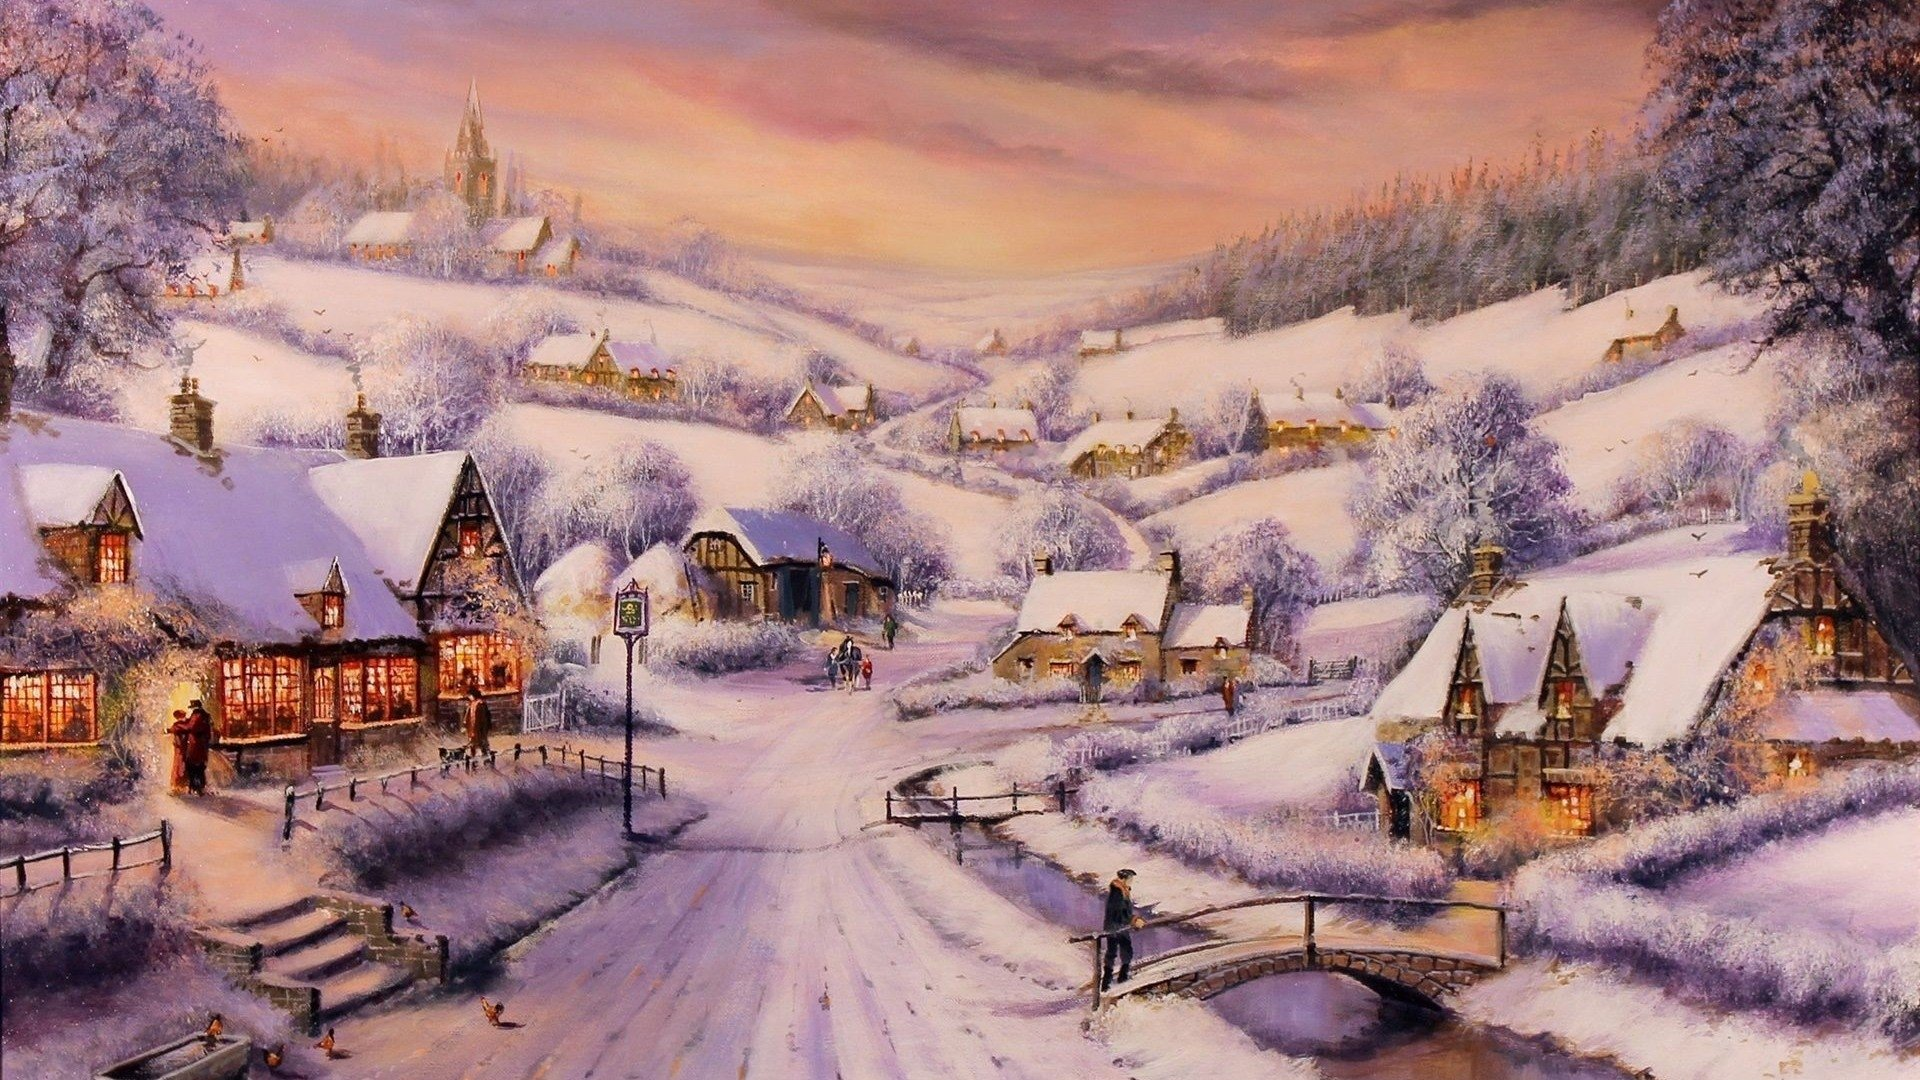 snowy english village wallpaper - photo #4